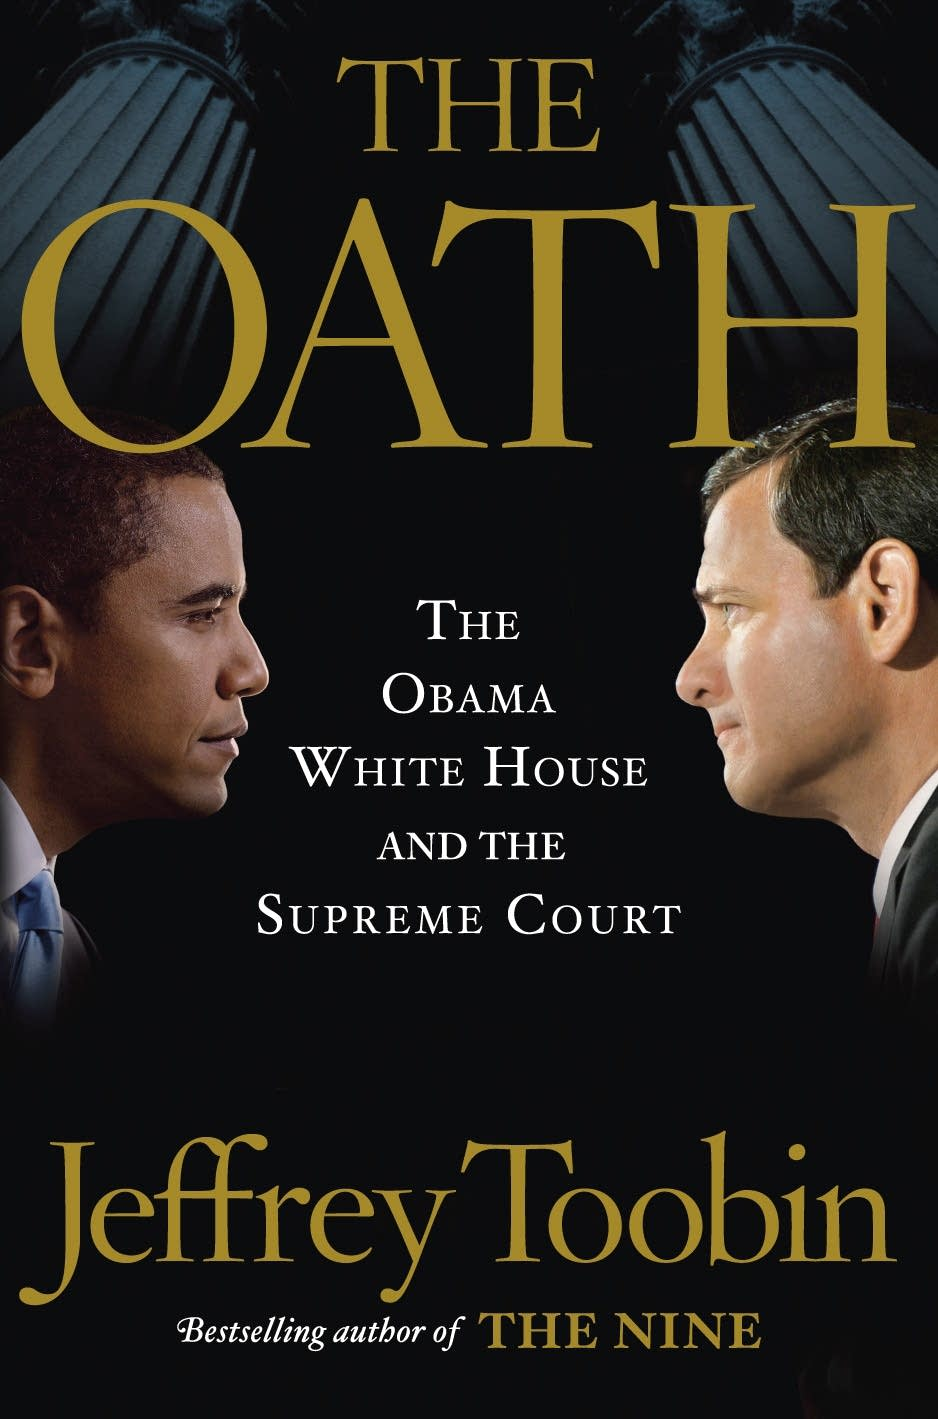 'The Oath' by Jeffrey Toobin